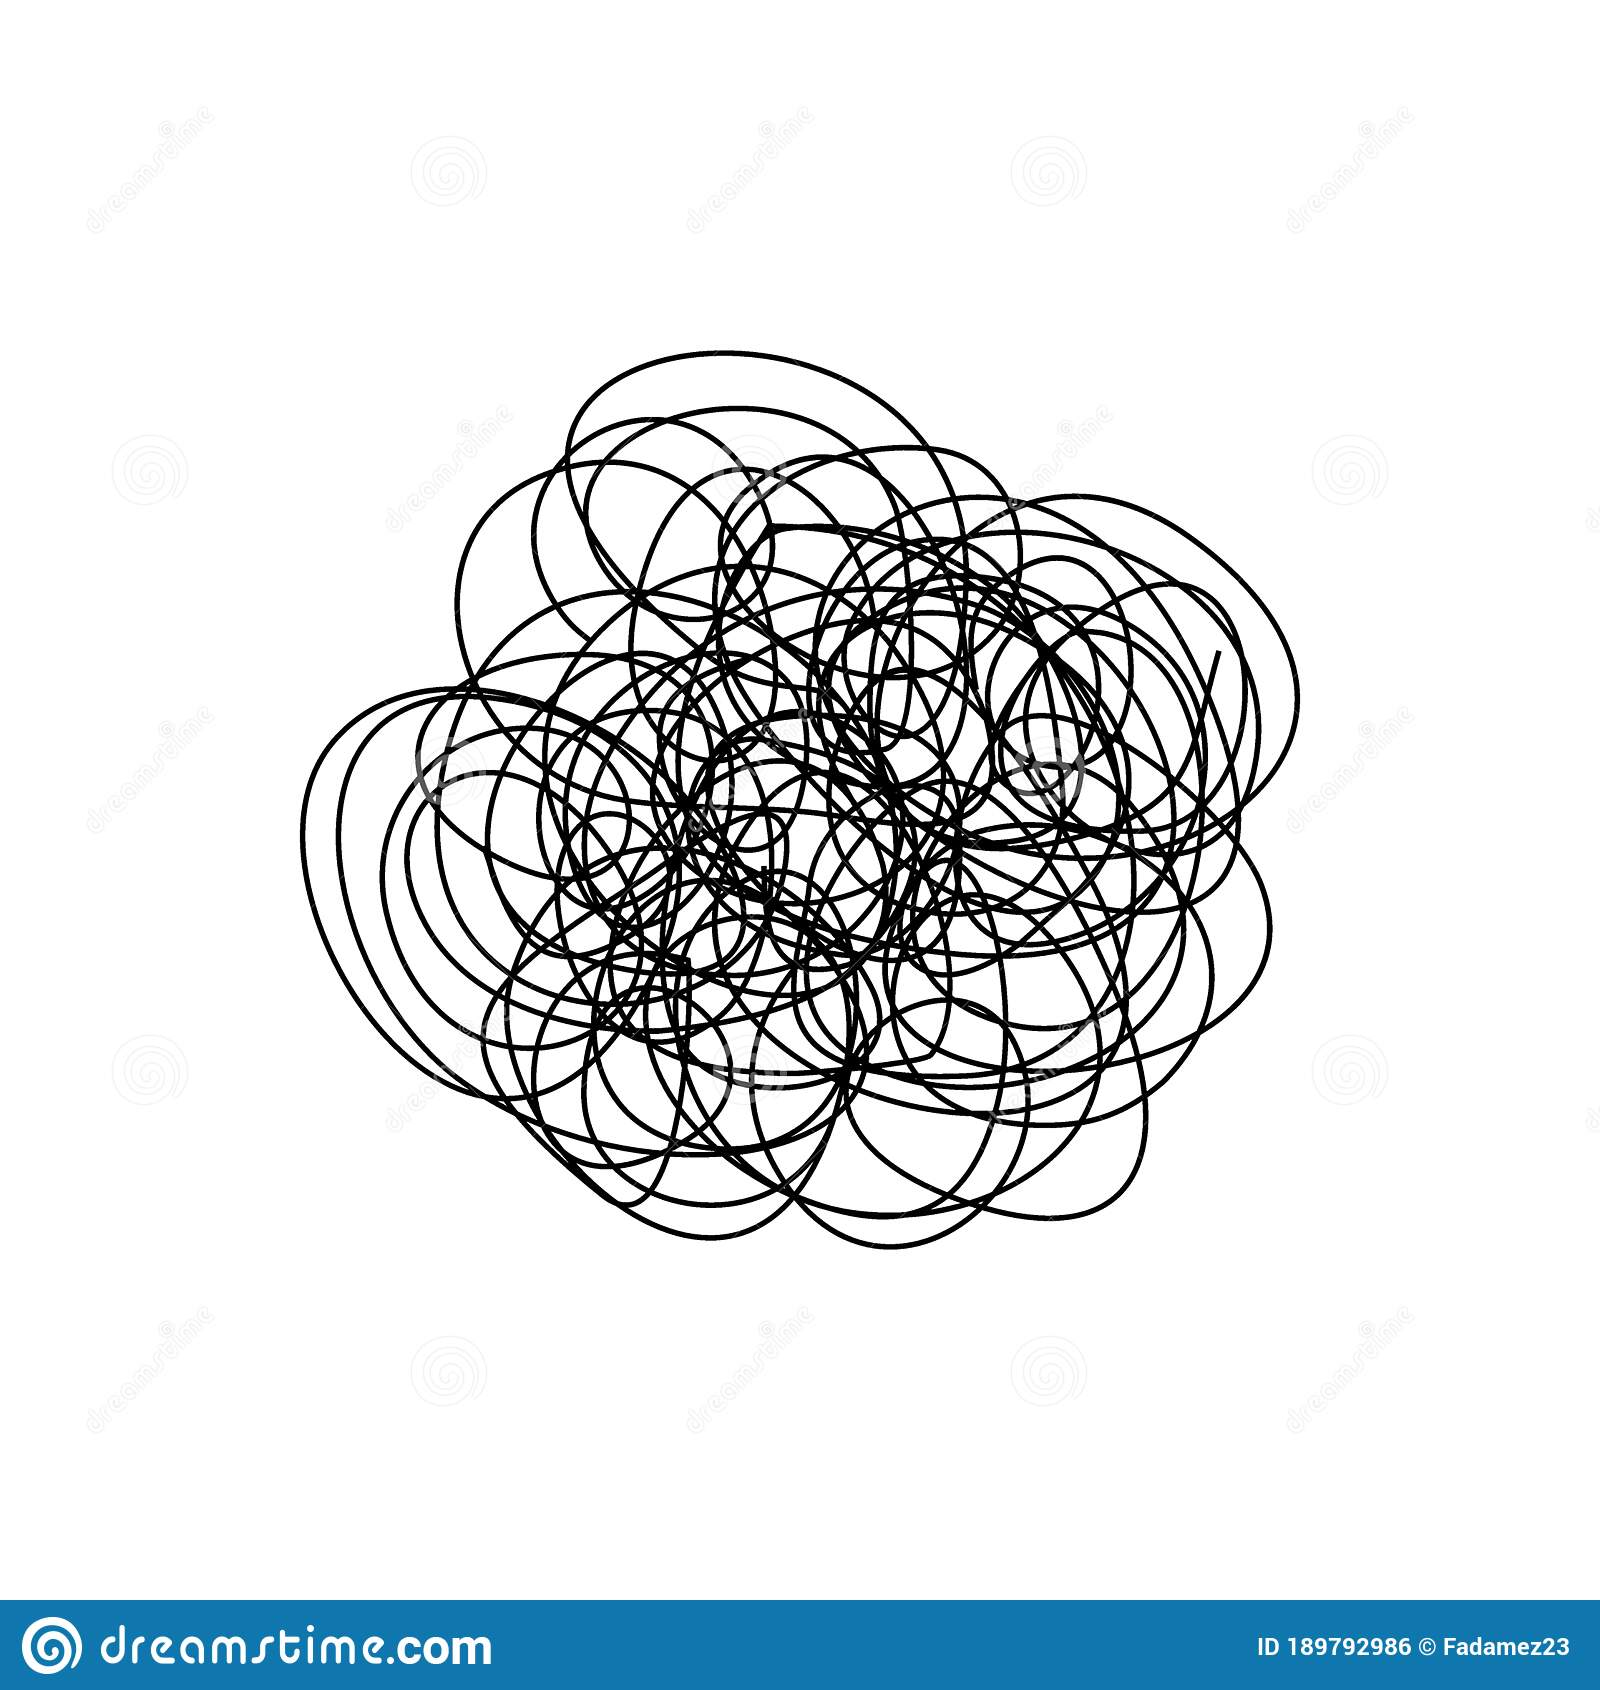 Illustration Of Tangled Yarn Metaphor Of Problem Solving Difficult Situation Chaos And Mess Stock Vector Illustration Of Curve Metaphor 189792986